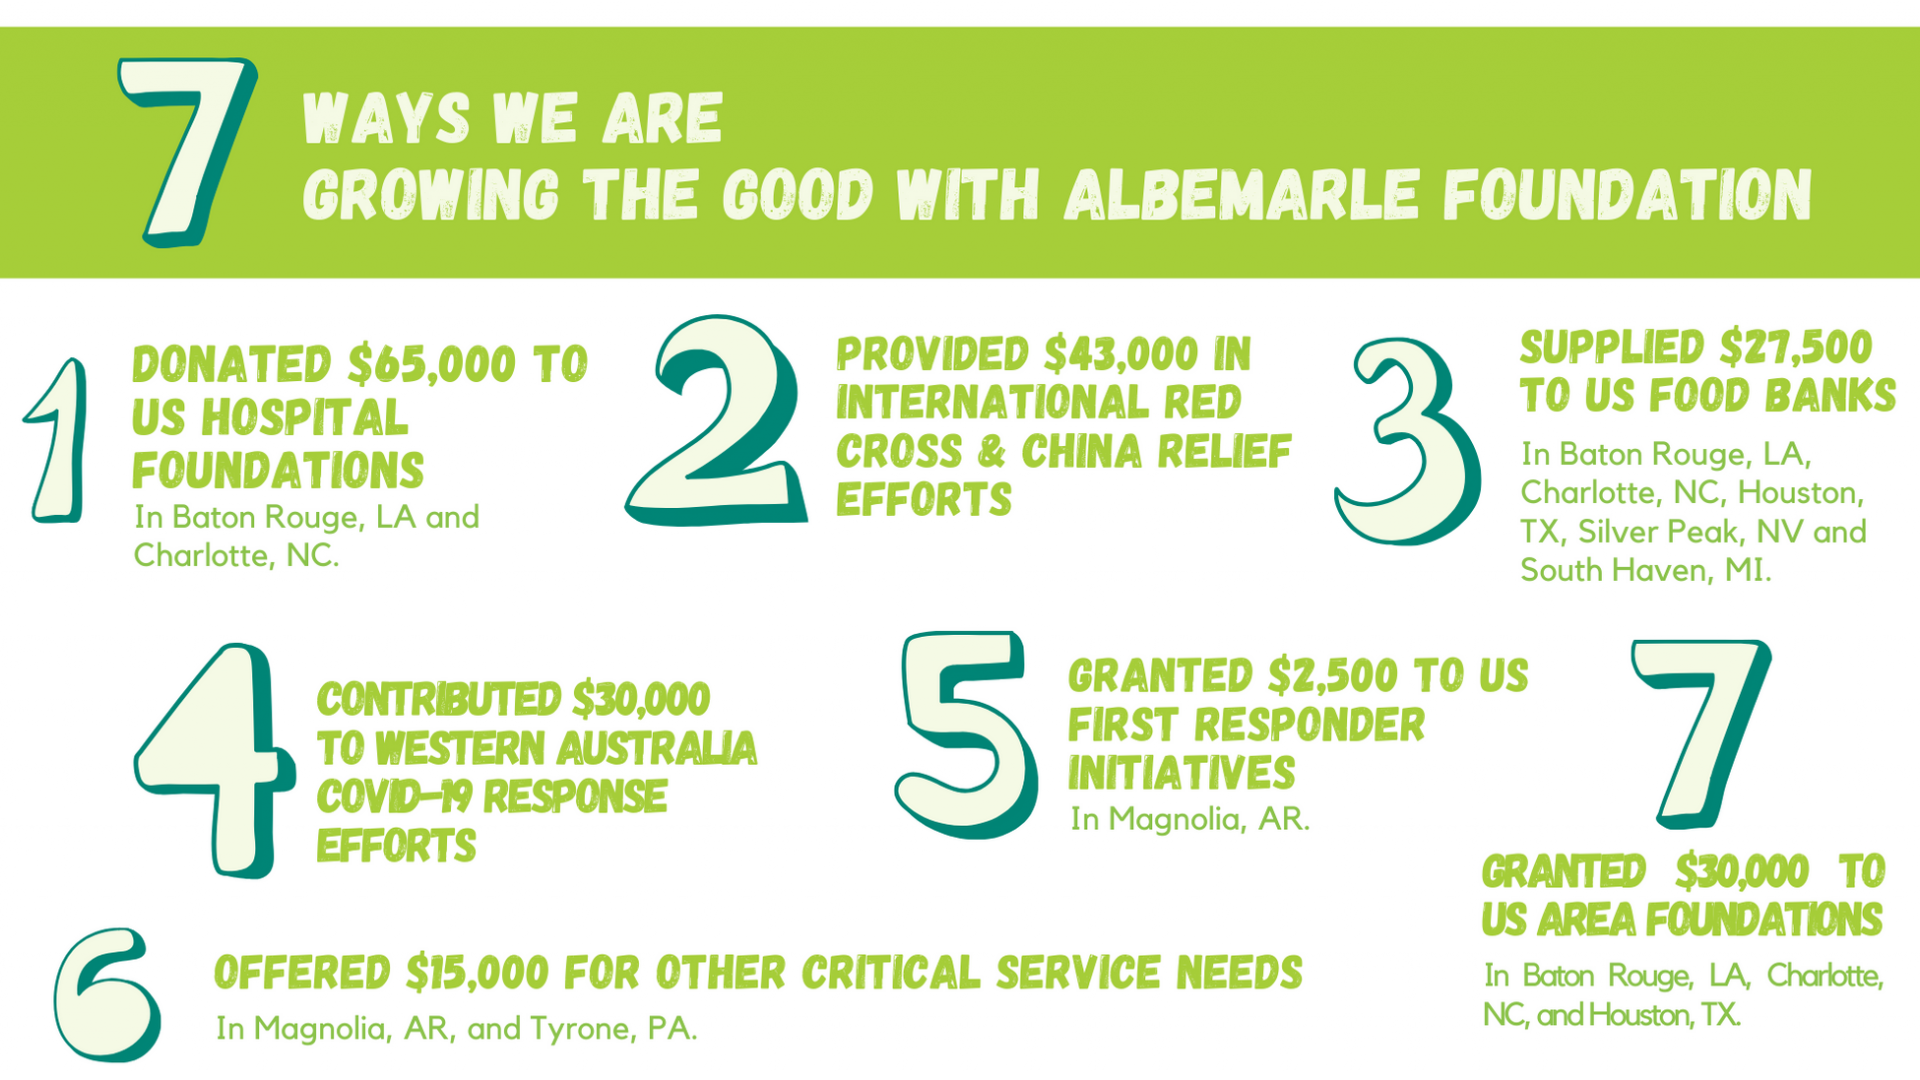 7 Ways we are Growing the Good with Albemarle Foundation